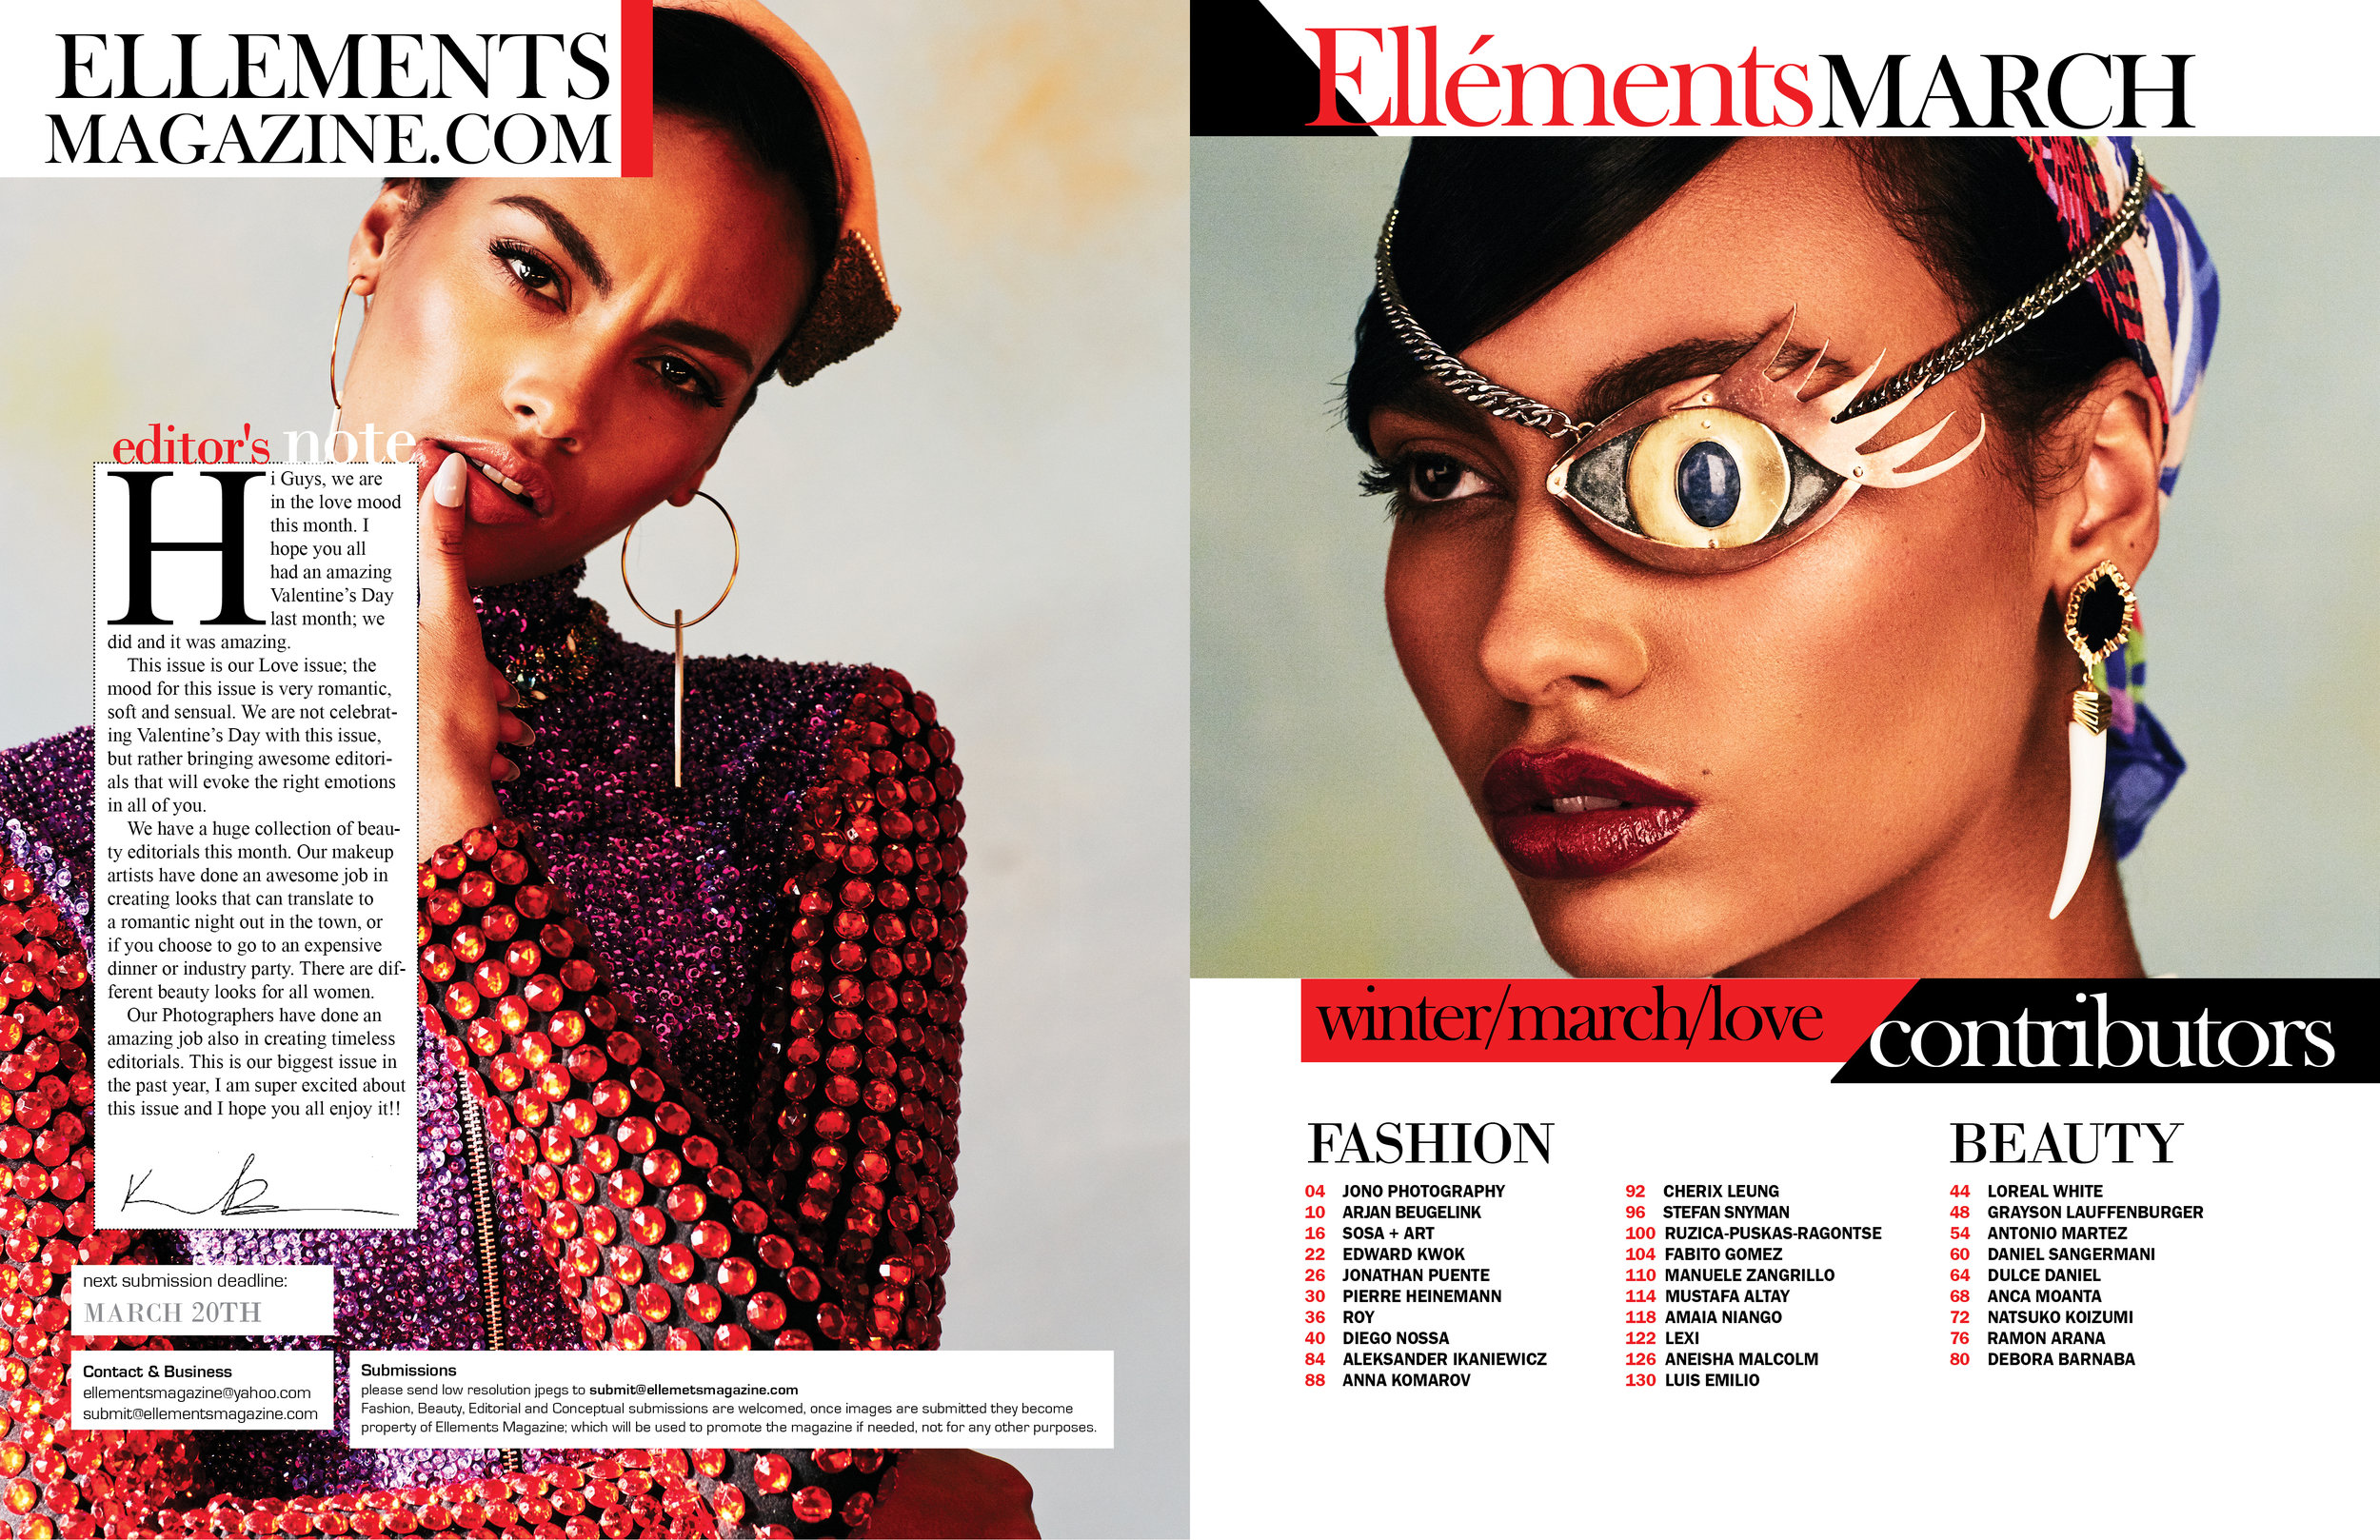 ELLEMENTS - MARCH 2016   COLOUR BLIND beauty editorial by Antonio Martez, New York Fashion Photographer, was featured in the March 2018 edition of Ellements Magazine. The editorial was a 6 page spread for that edition.